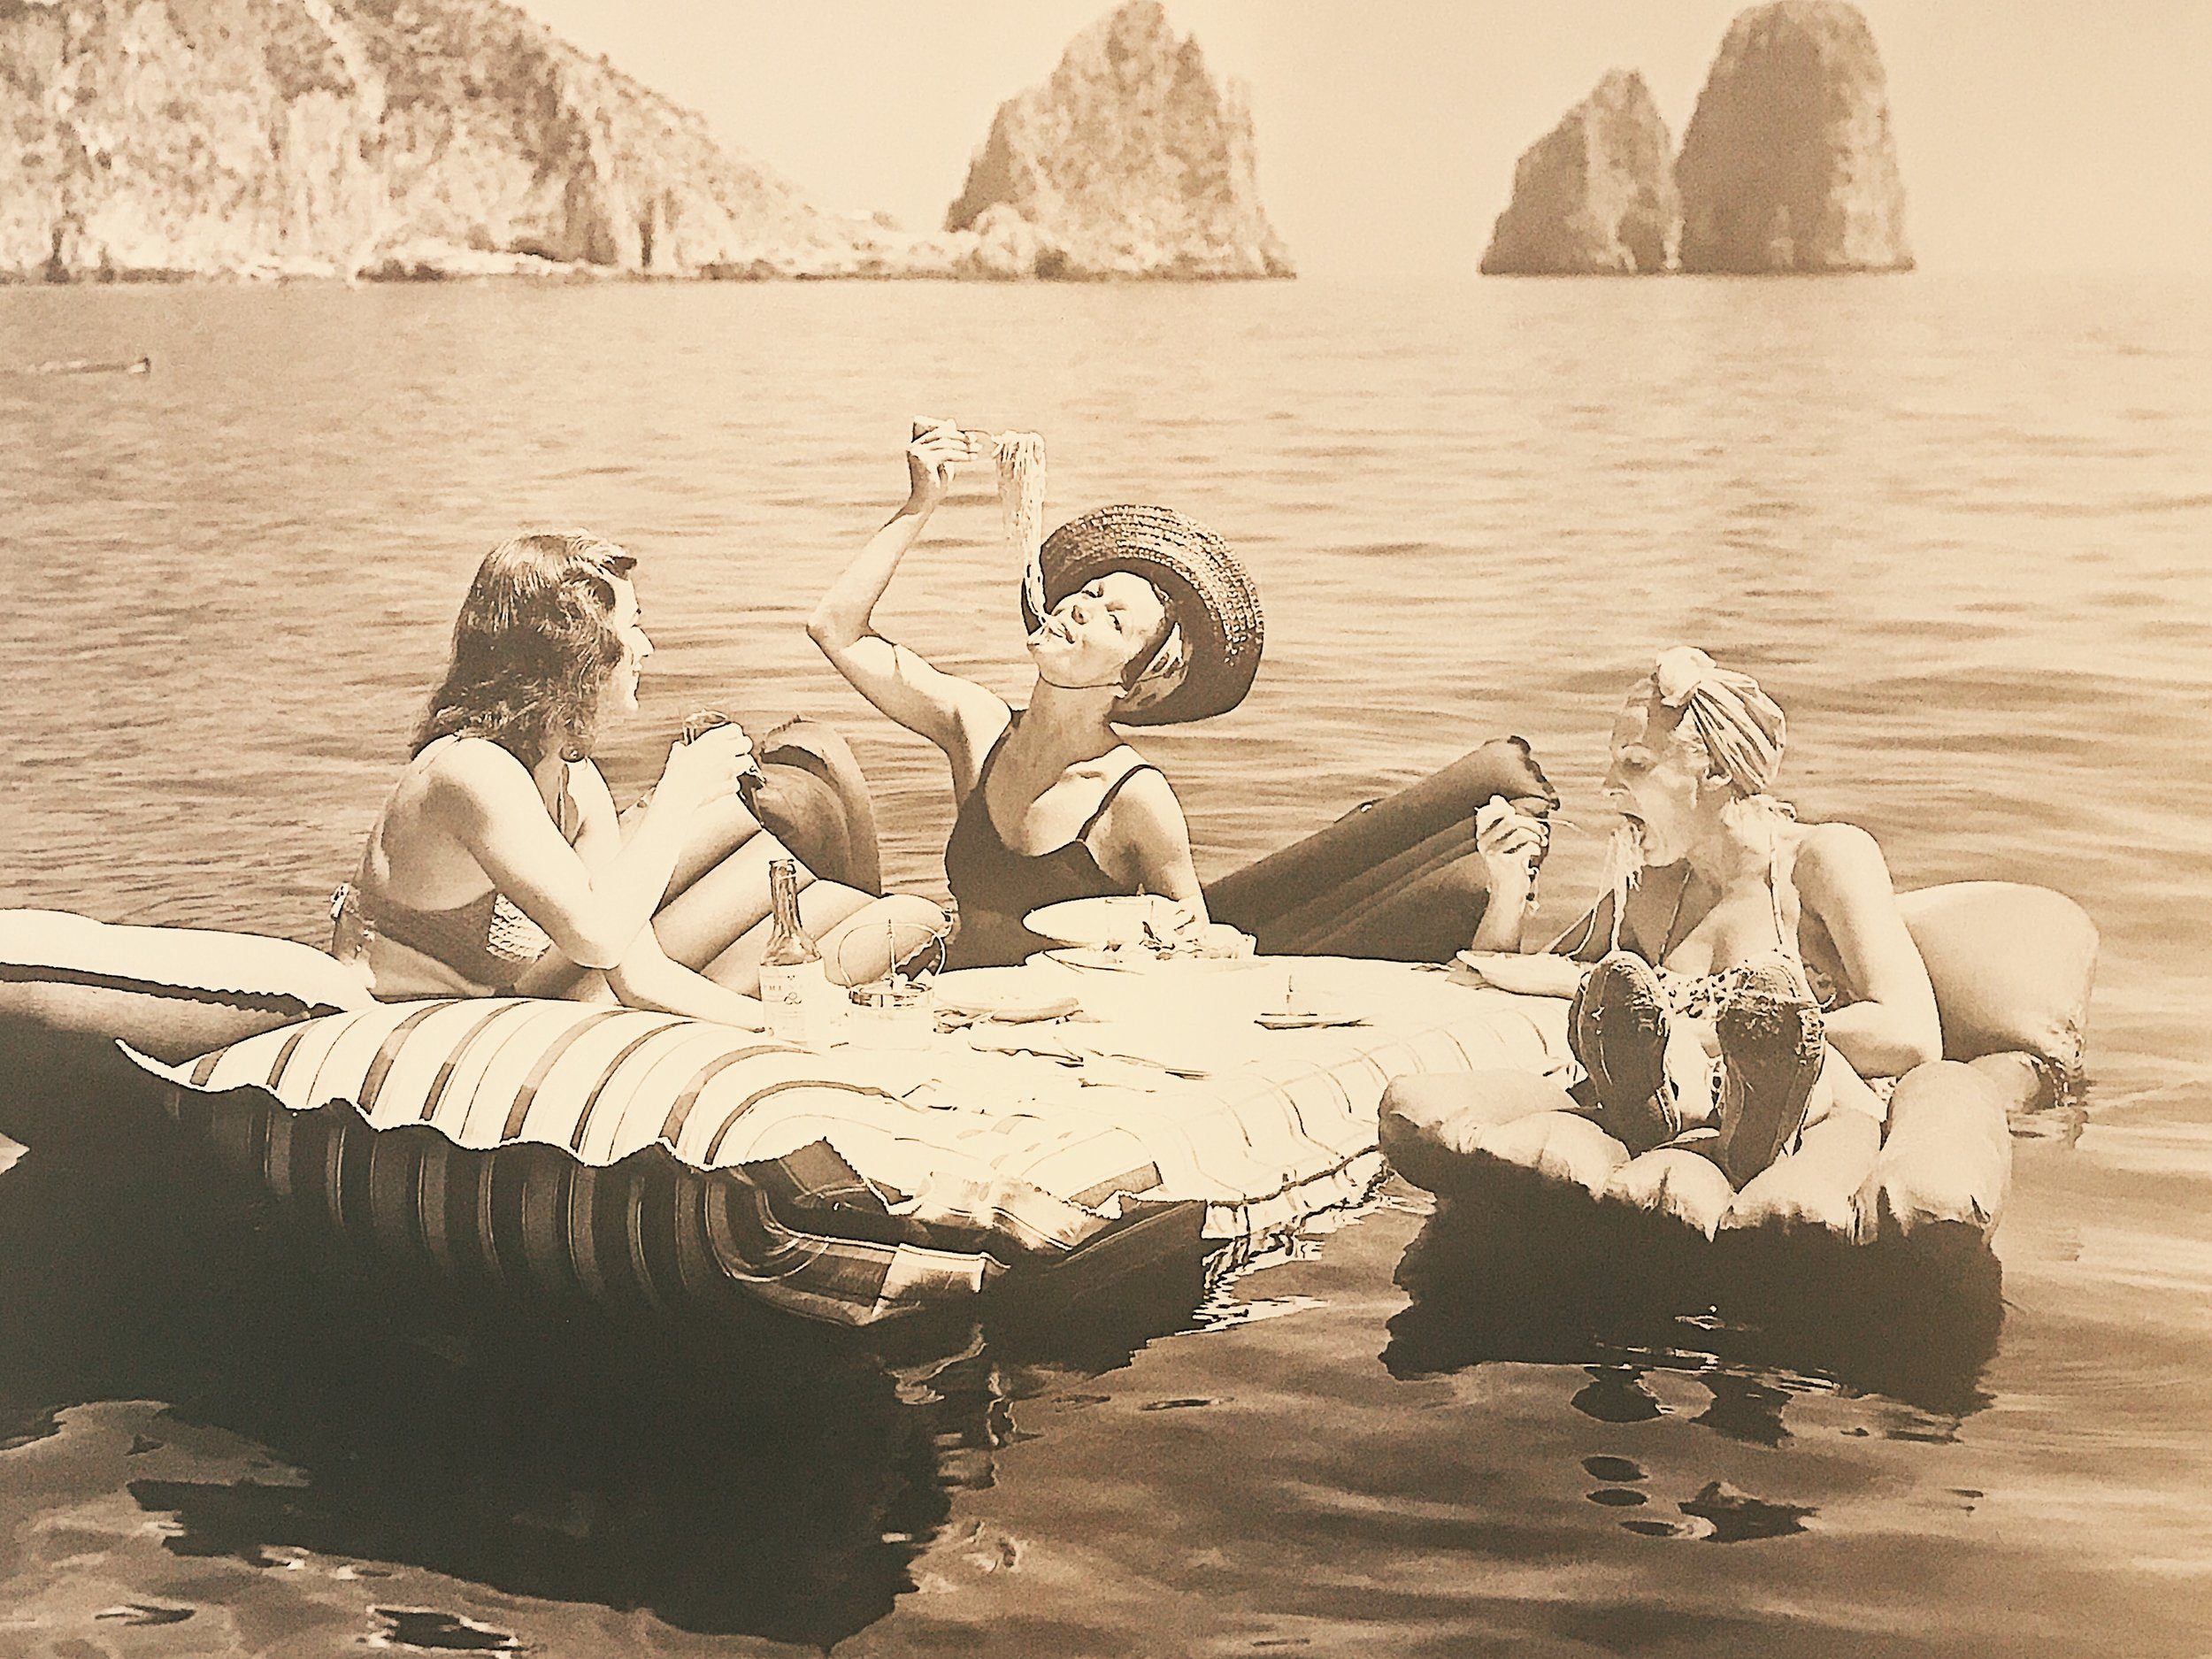 Photo of a photo. Hamilton Wright's 1939 capture of three young women eating spaghetti on raft.